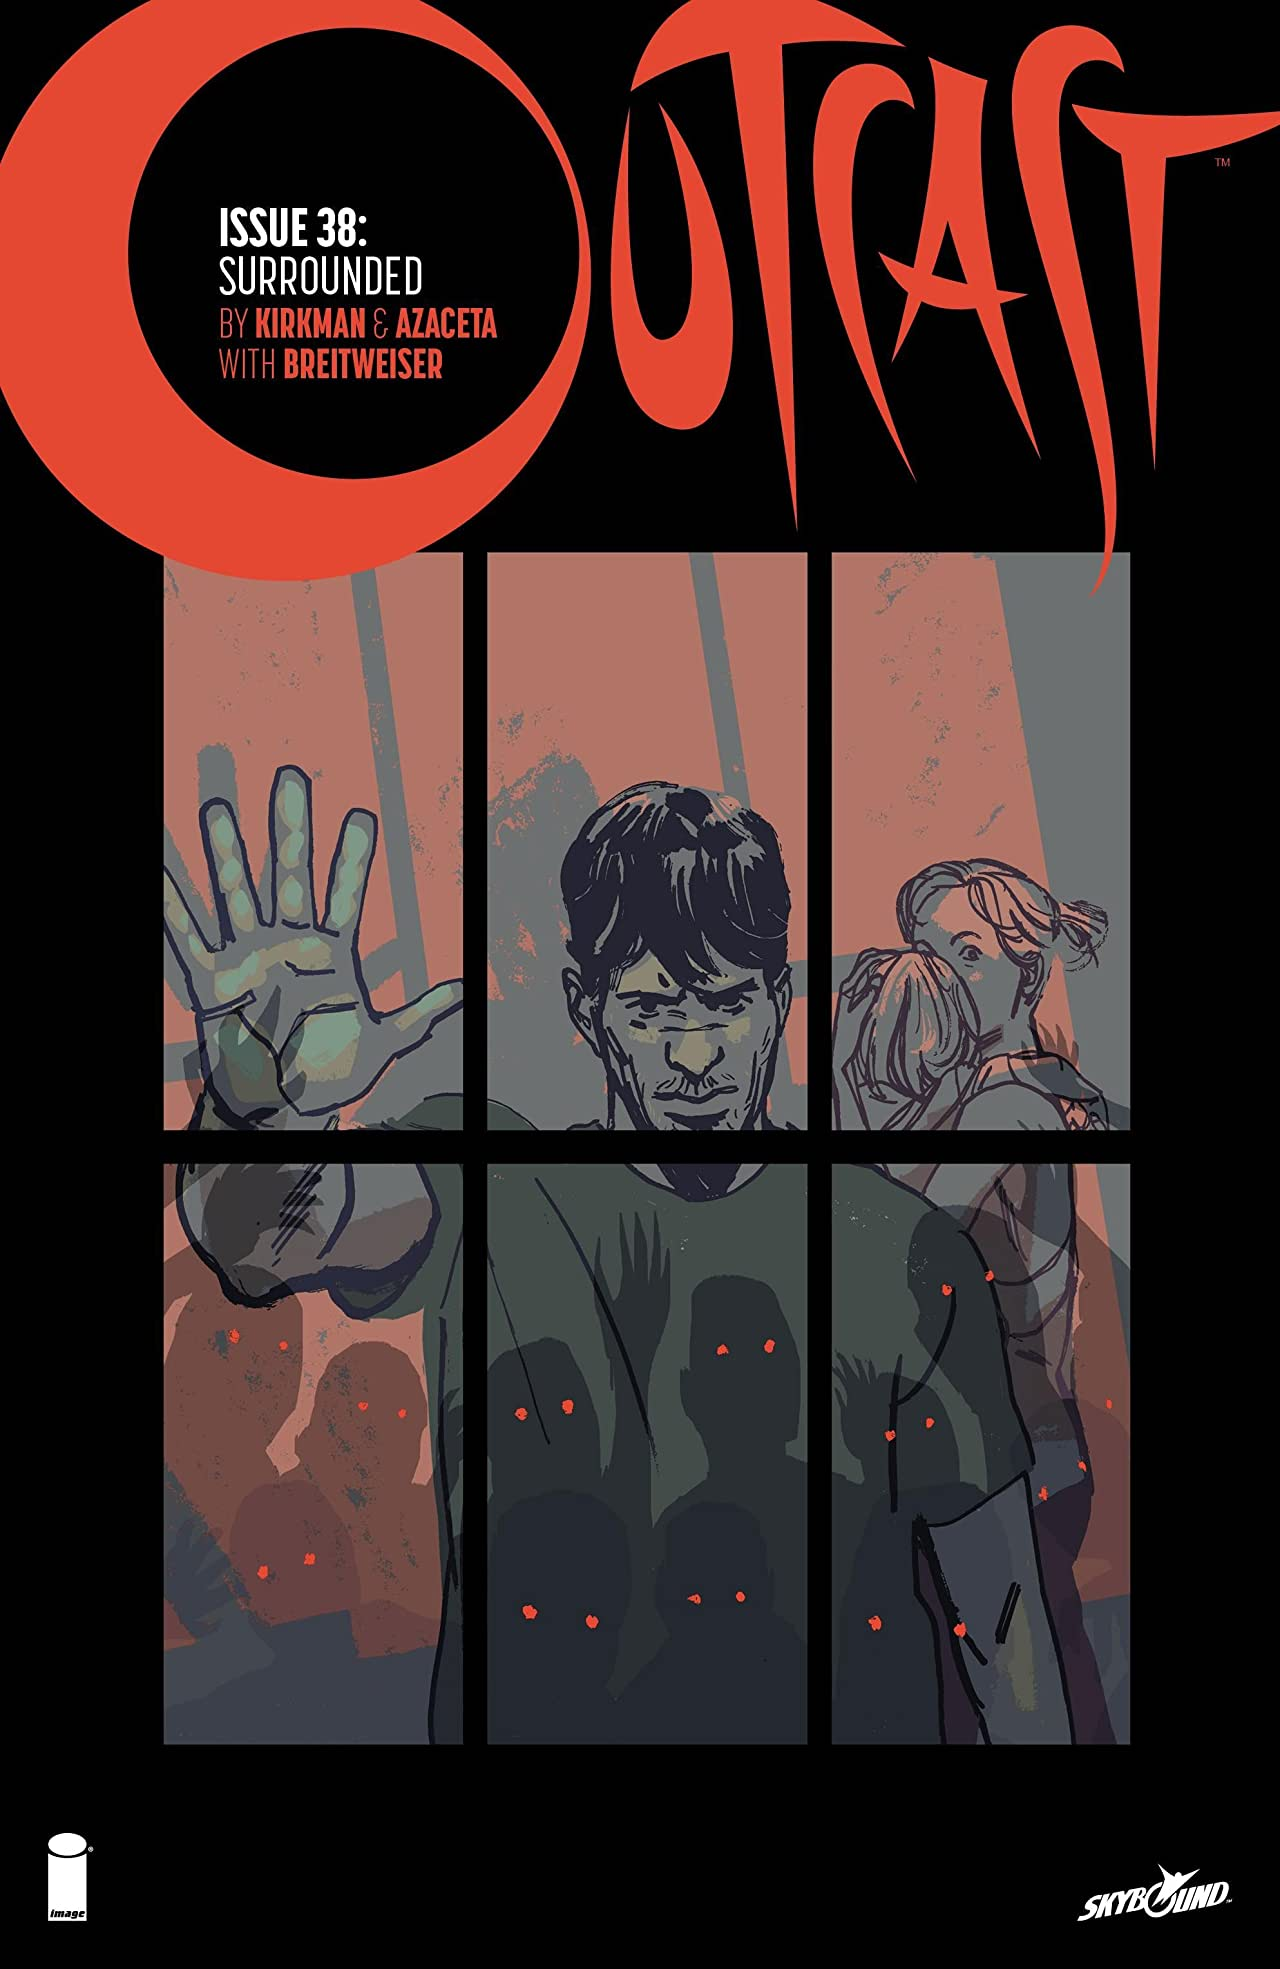 Outcast By Kirkman & Azaceta No.38